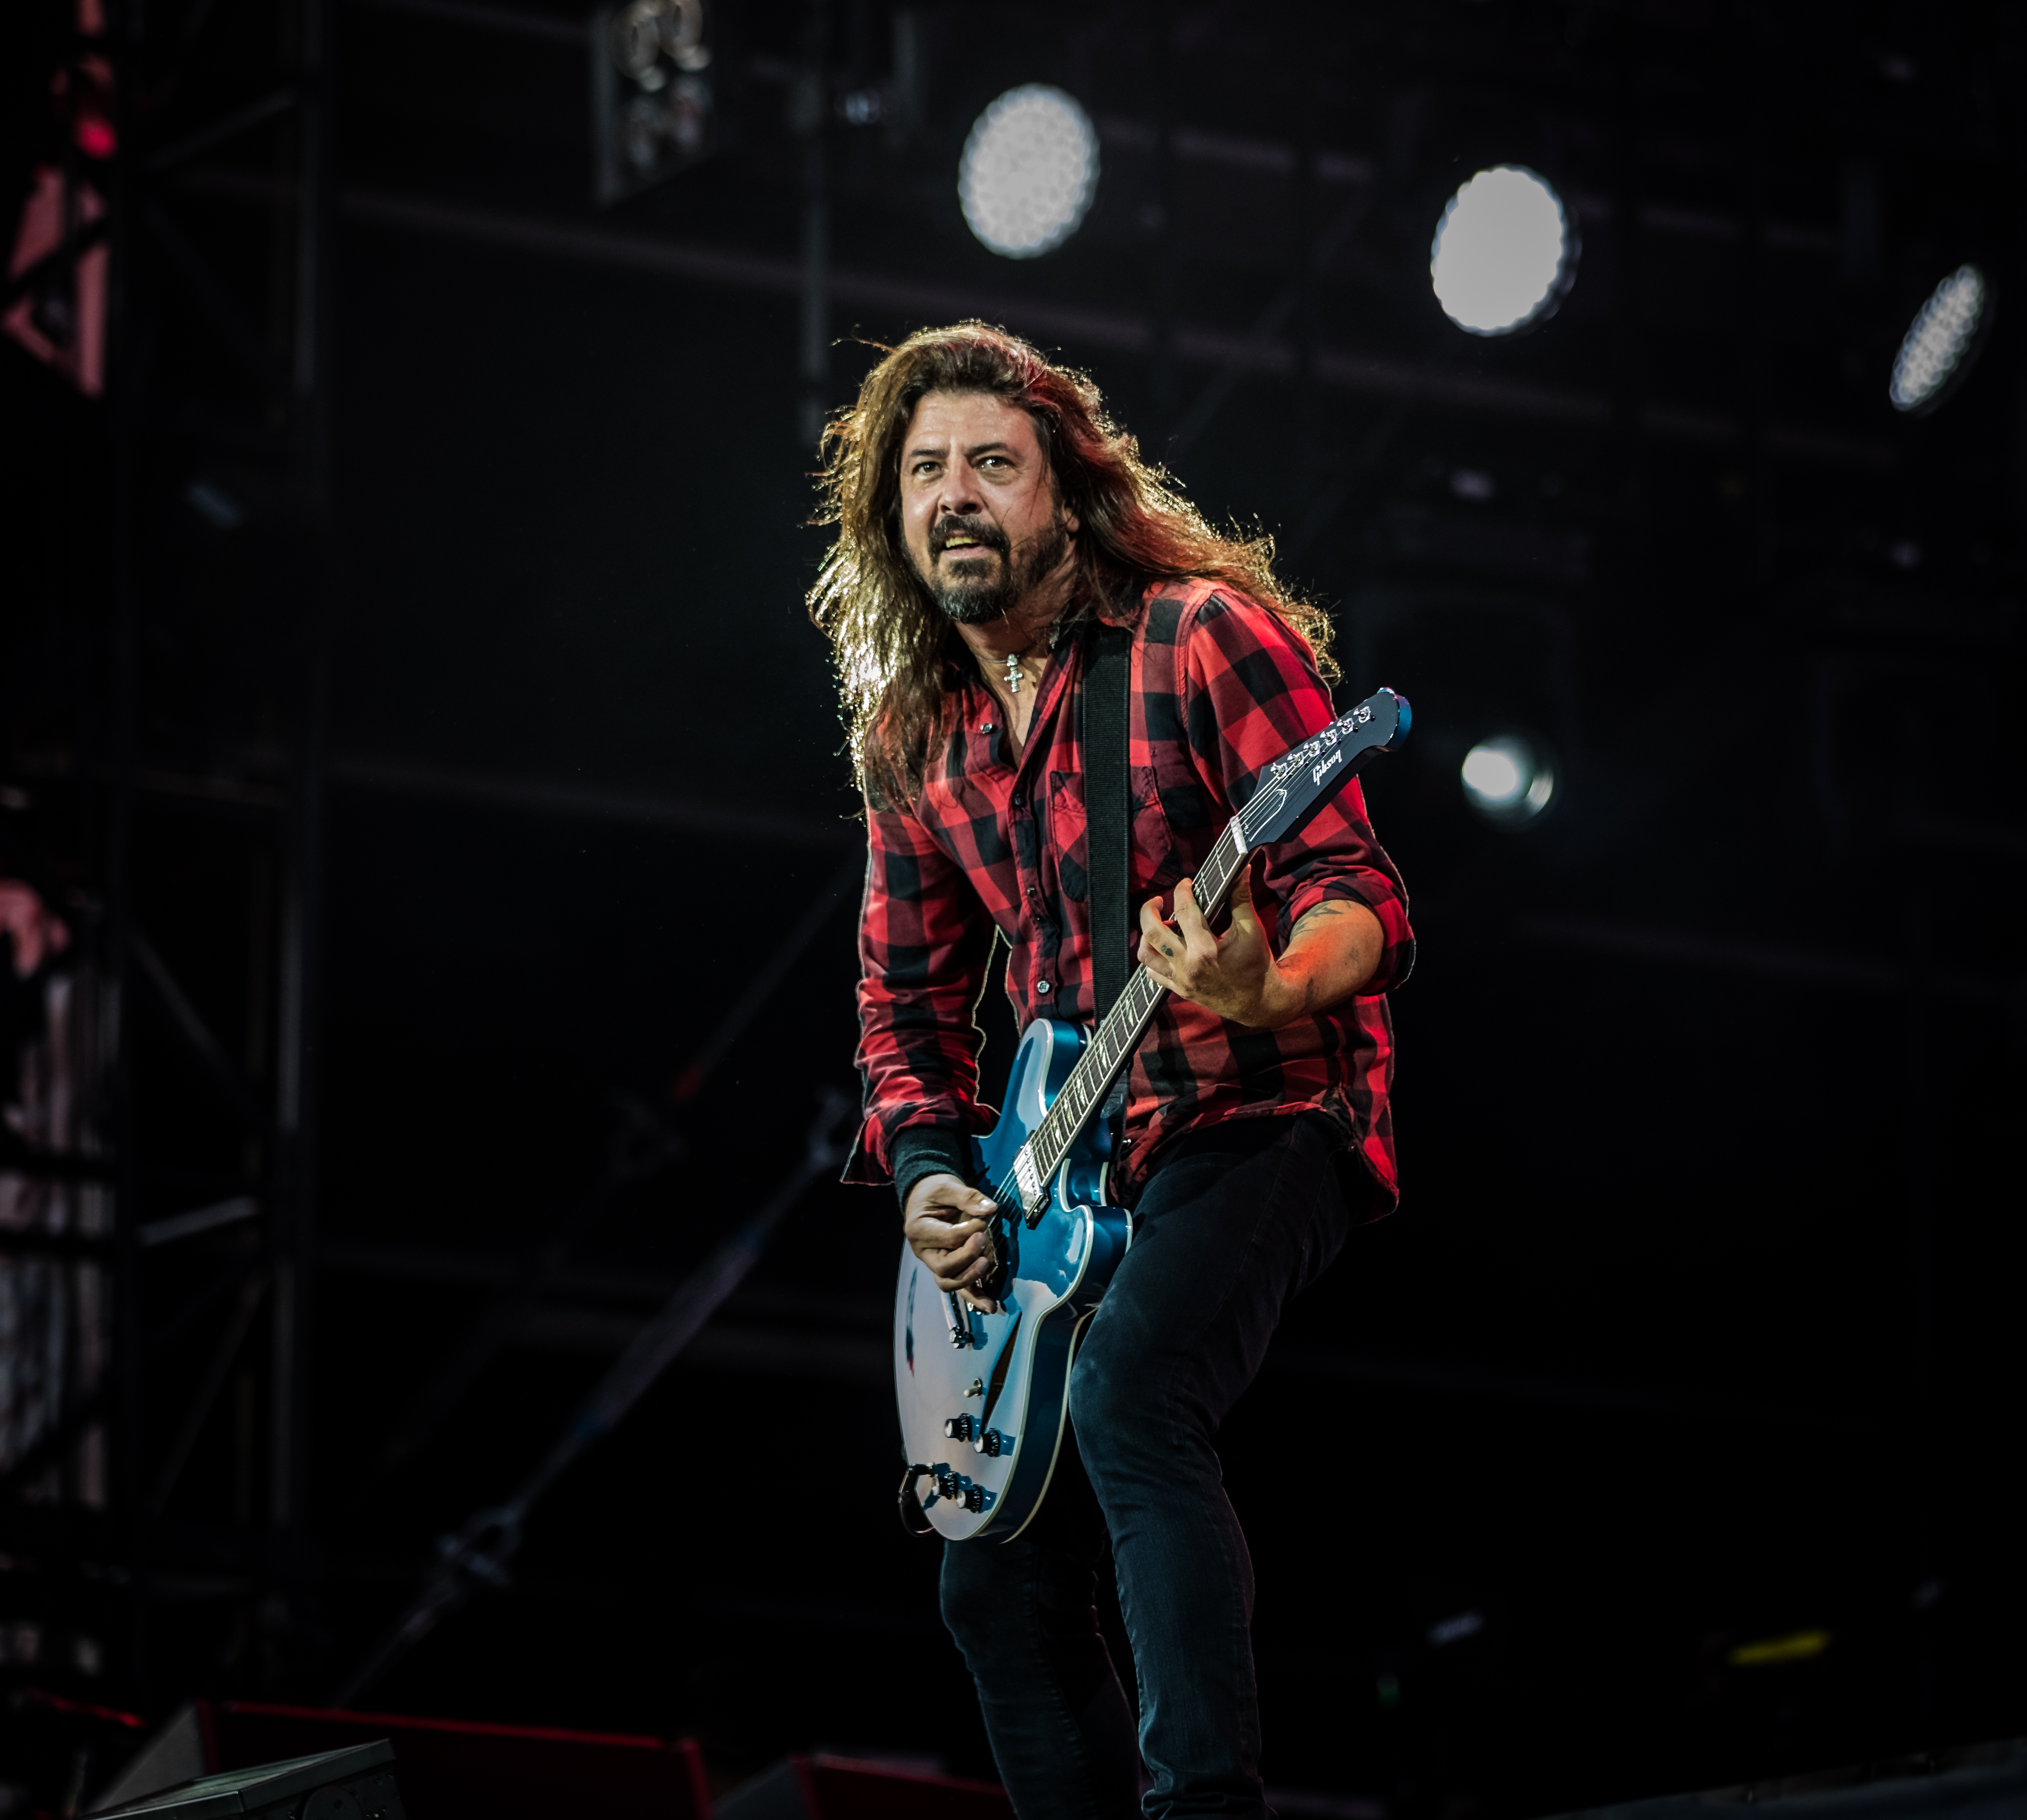 The 49-year old son of father (?) and mother Virginia Grohl Dave Grohl in 2018 photo. Dave Grohl earned a  million dollar salary - leaving the net worth at 260 million in 2018